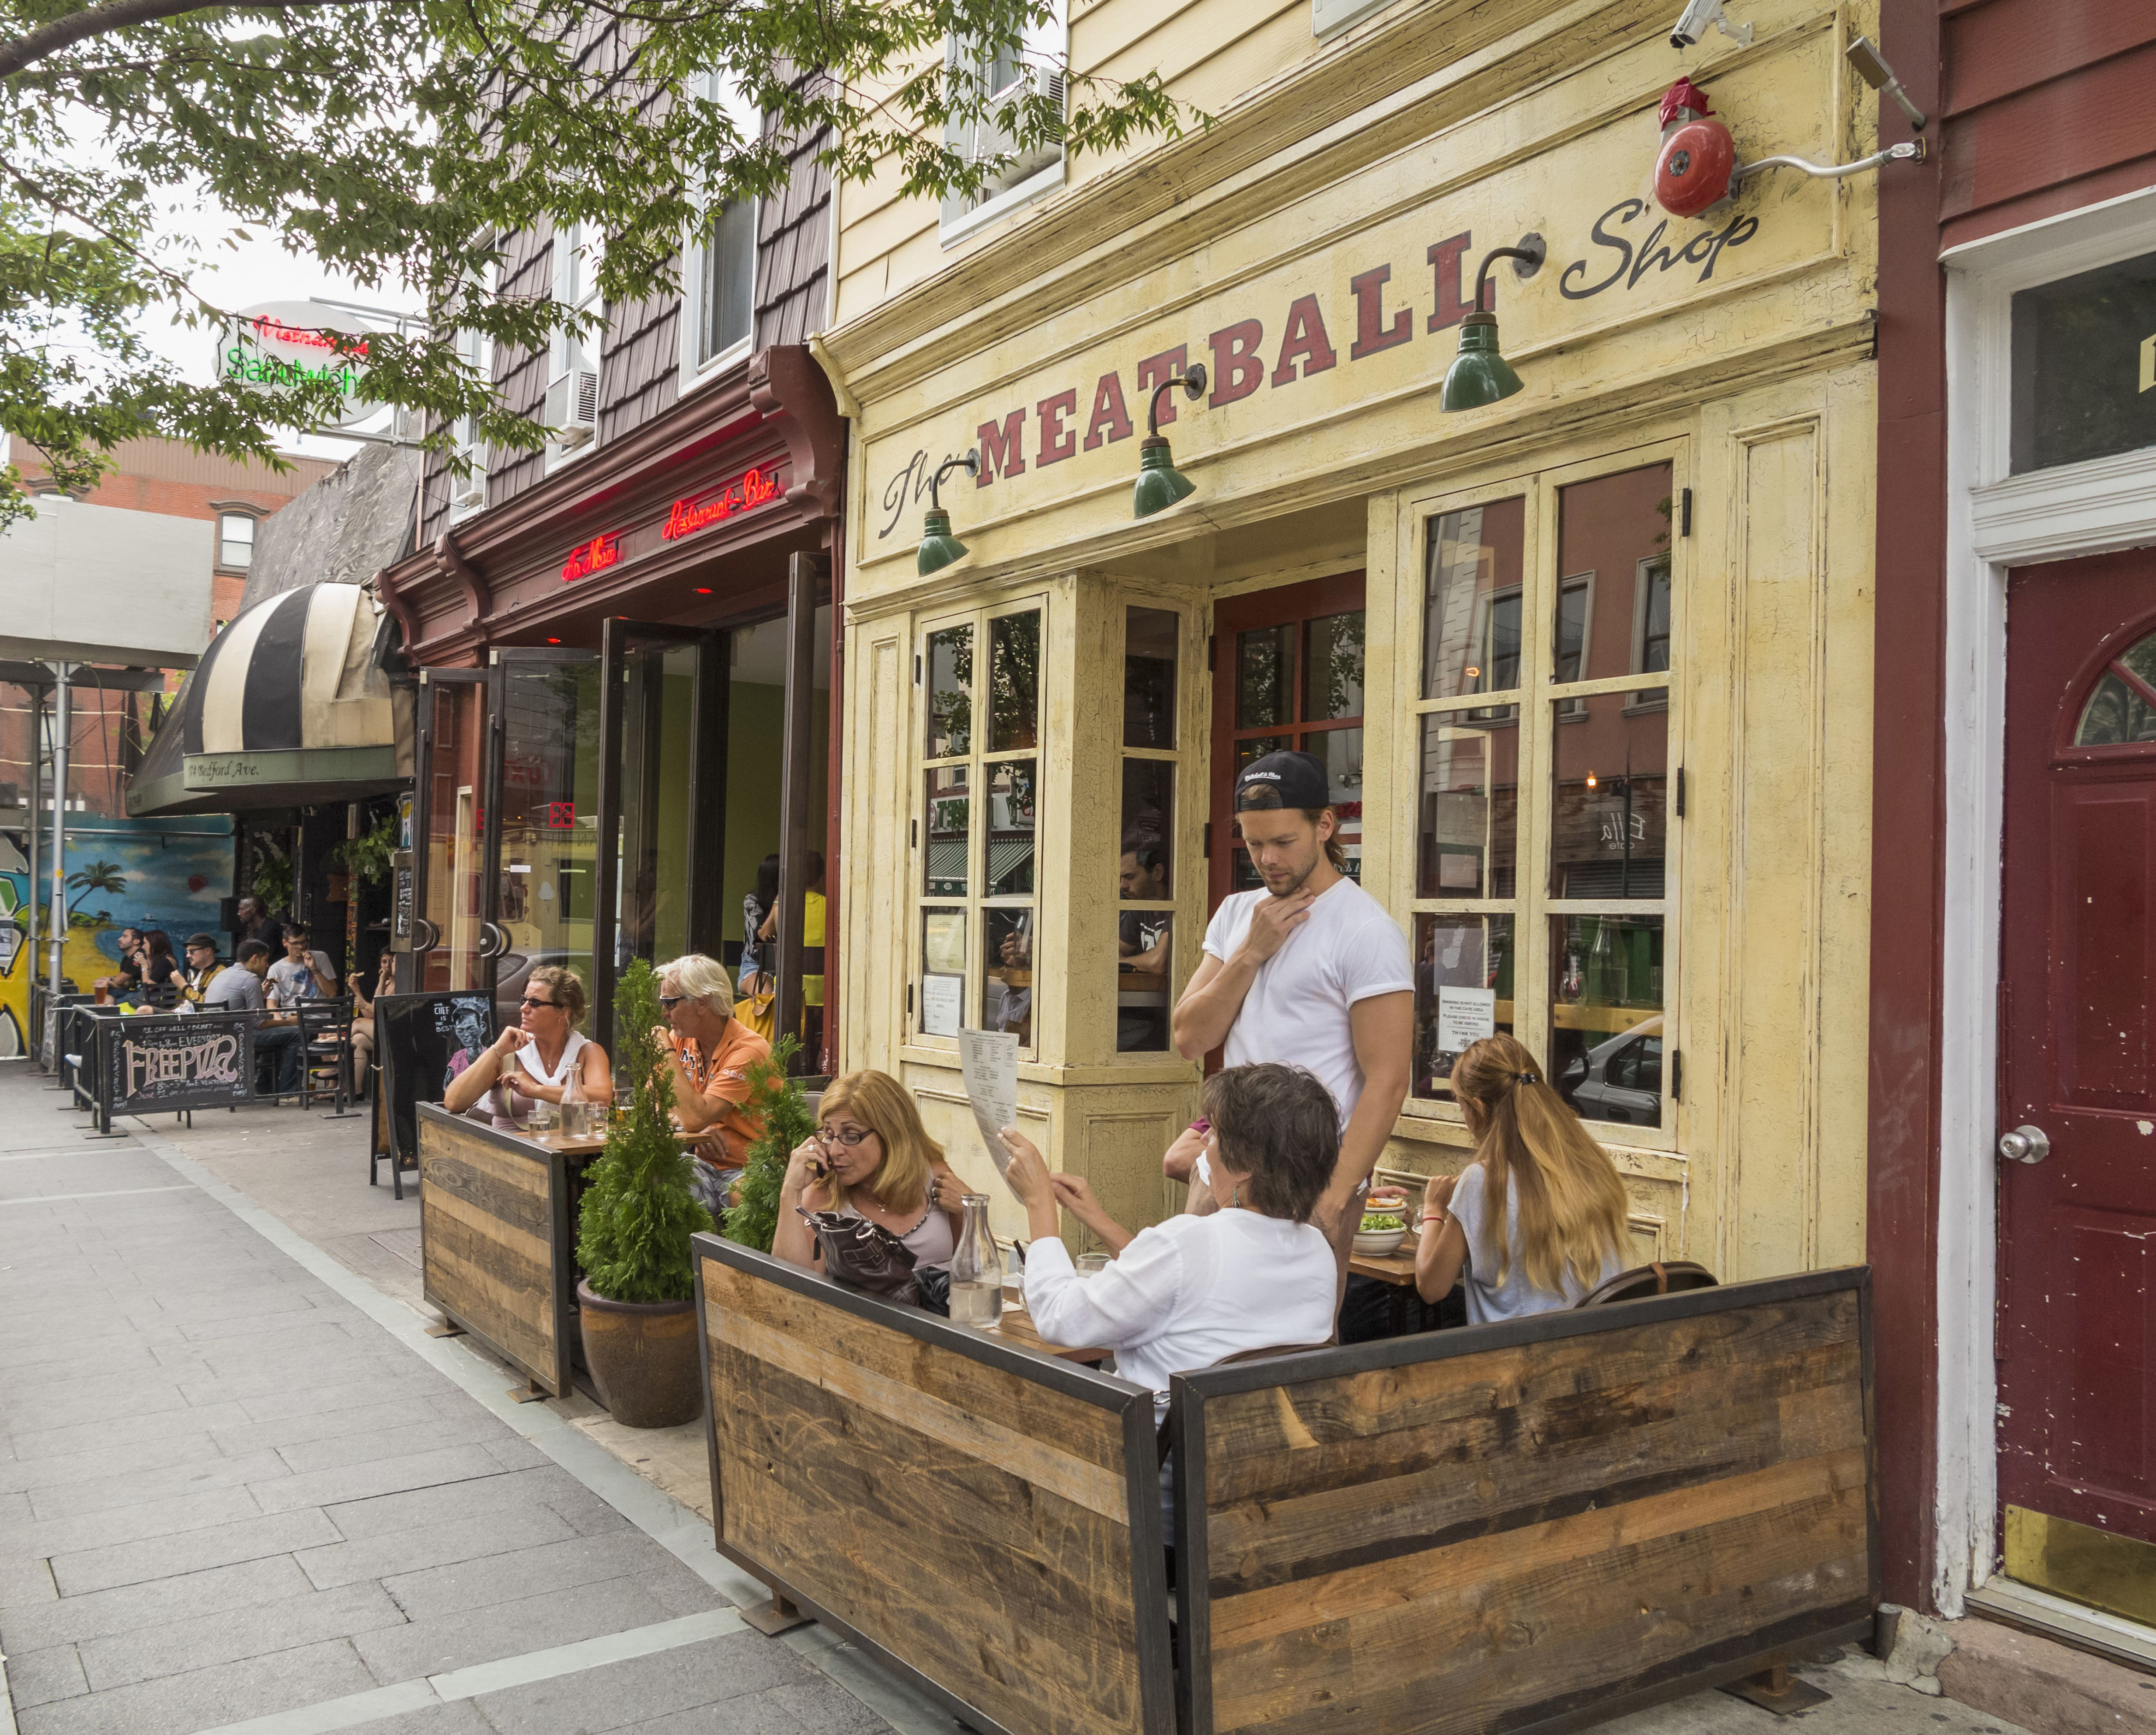 Pavement cafes and restaurants in Williamsburg, Brooklyn, New York City, New York State, USA